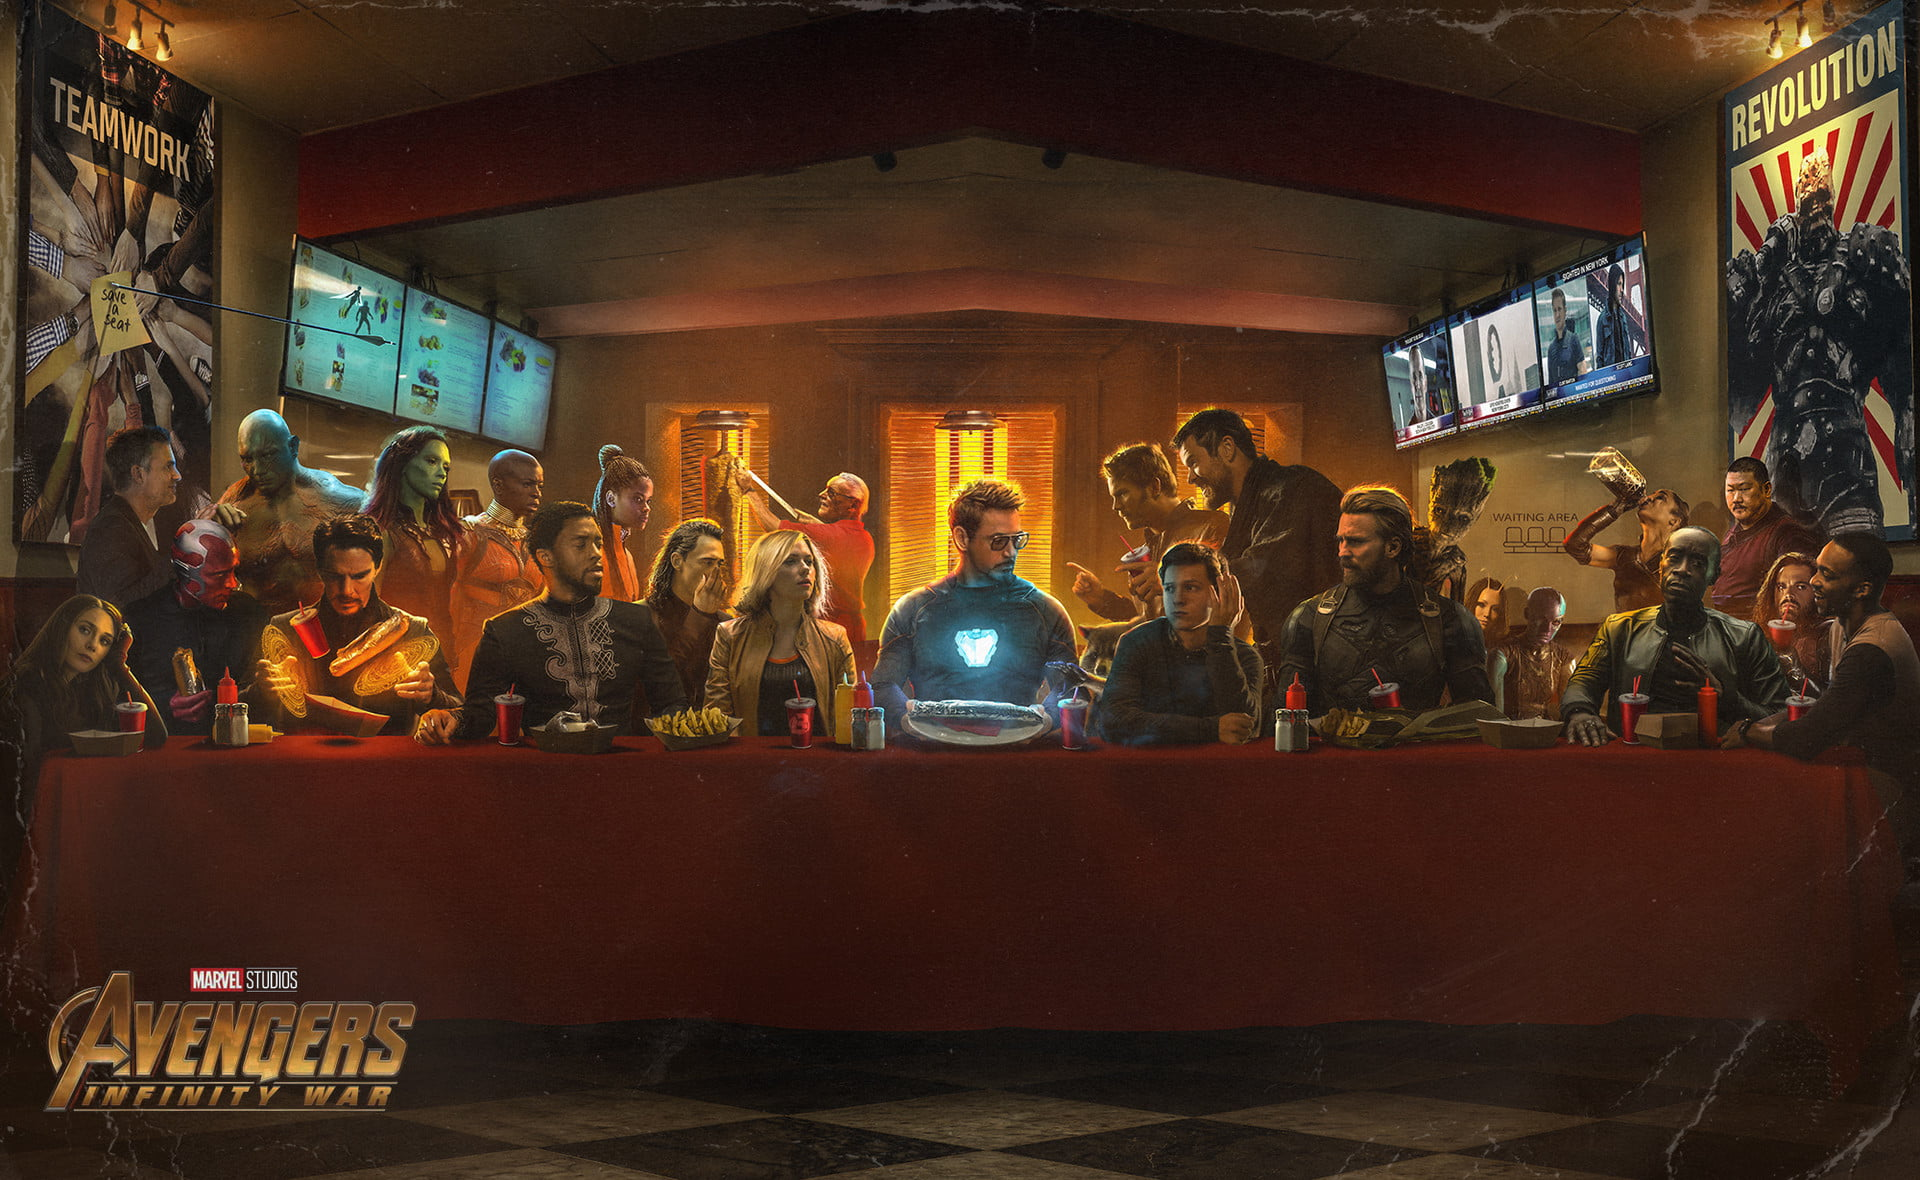 Doctor Who Wallpaper Iphone 4s Avengers Last Supper Wallpaper Hd Wallpaper Wallpaper Flare